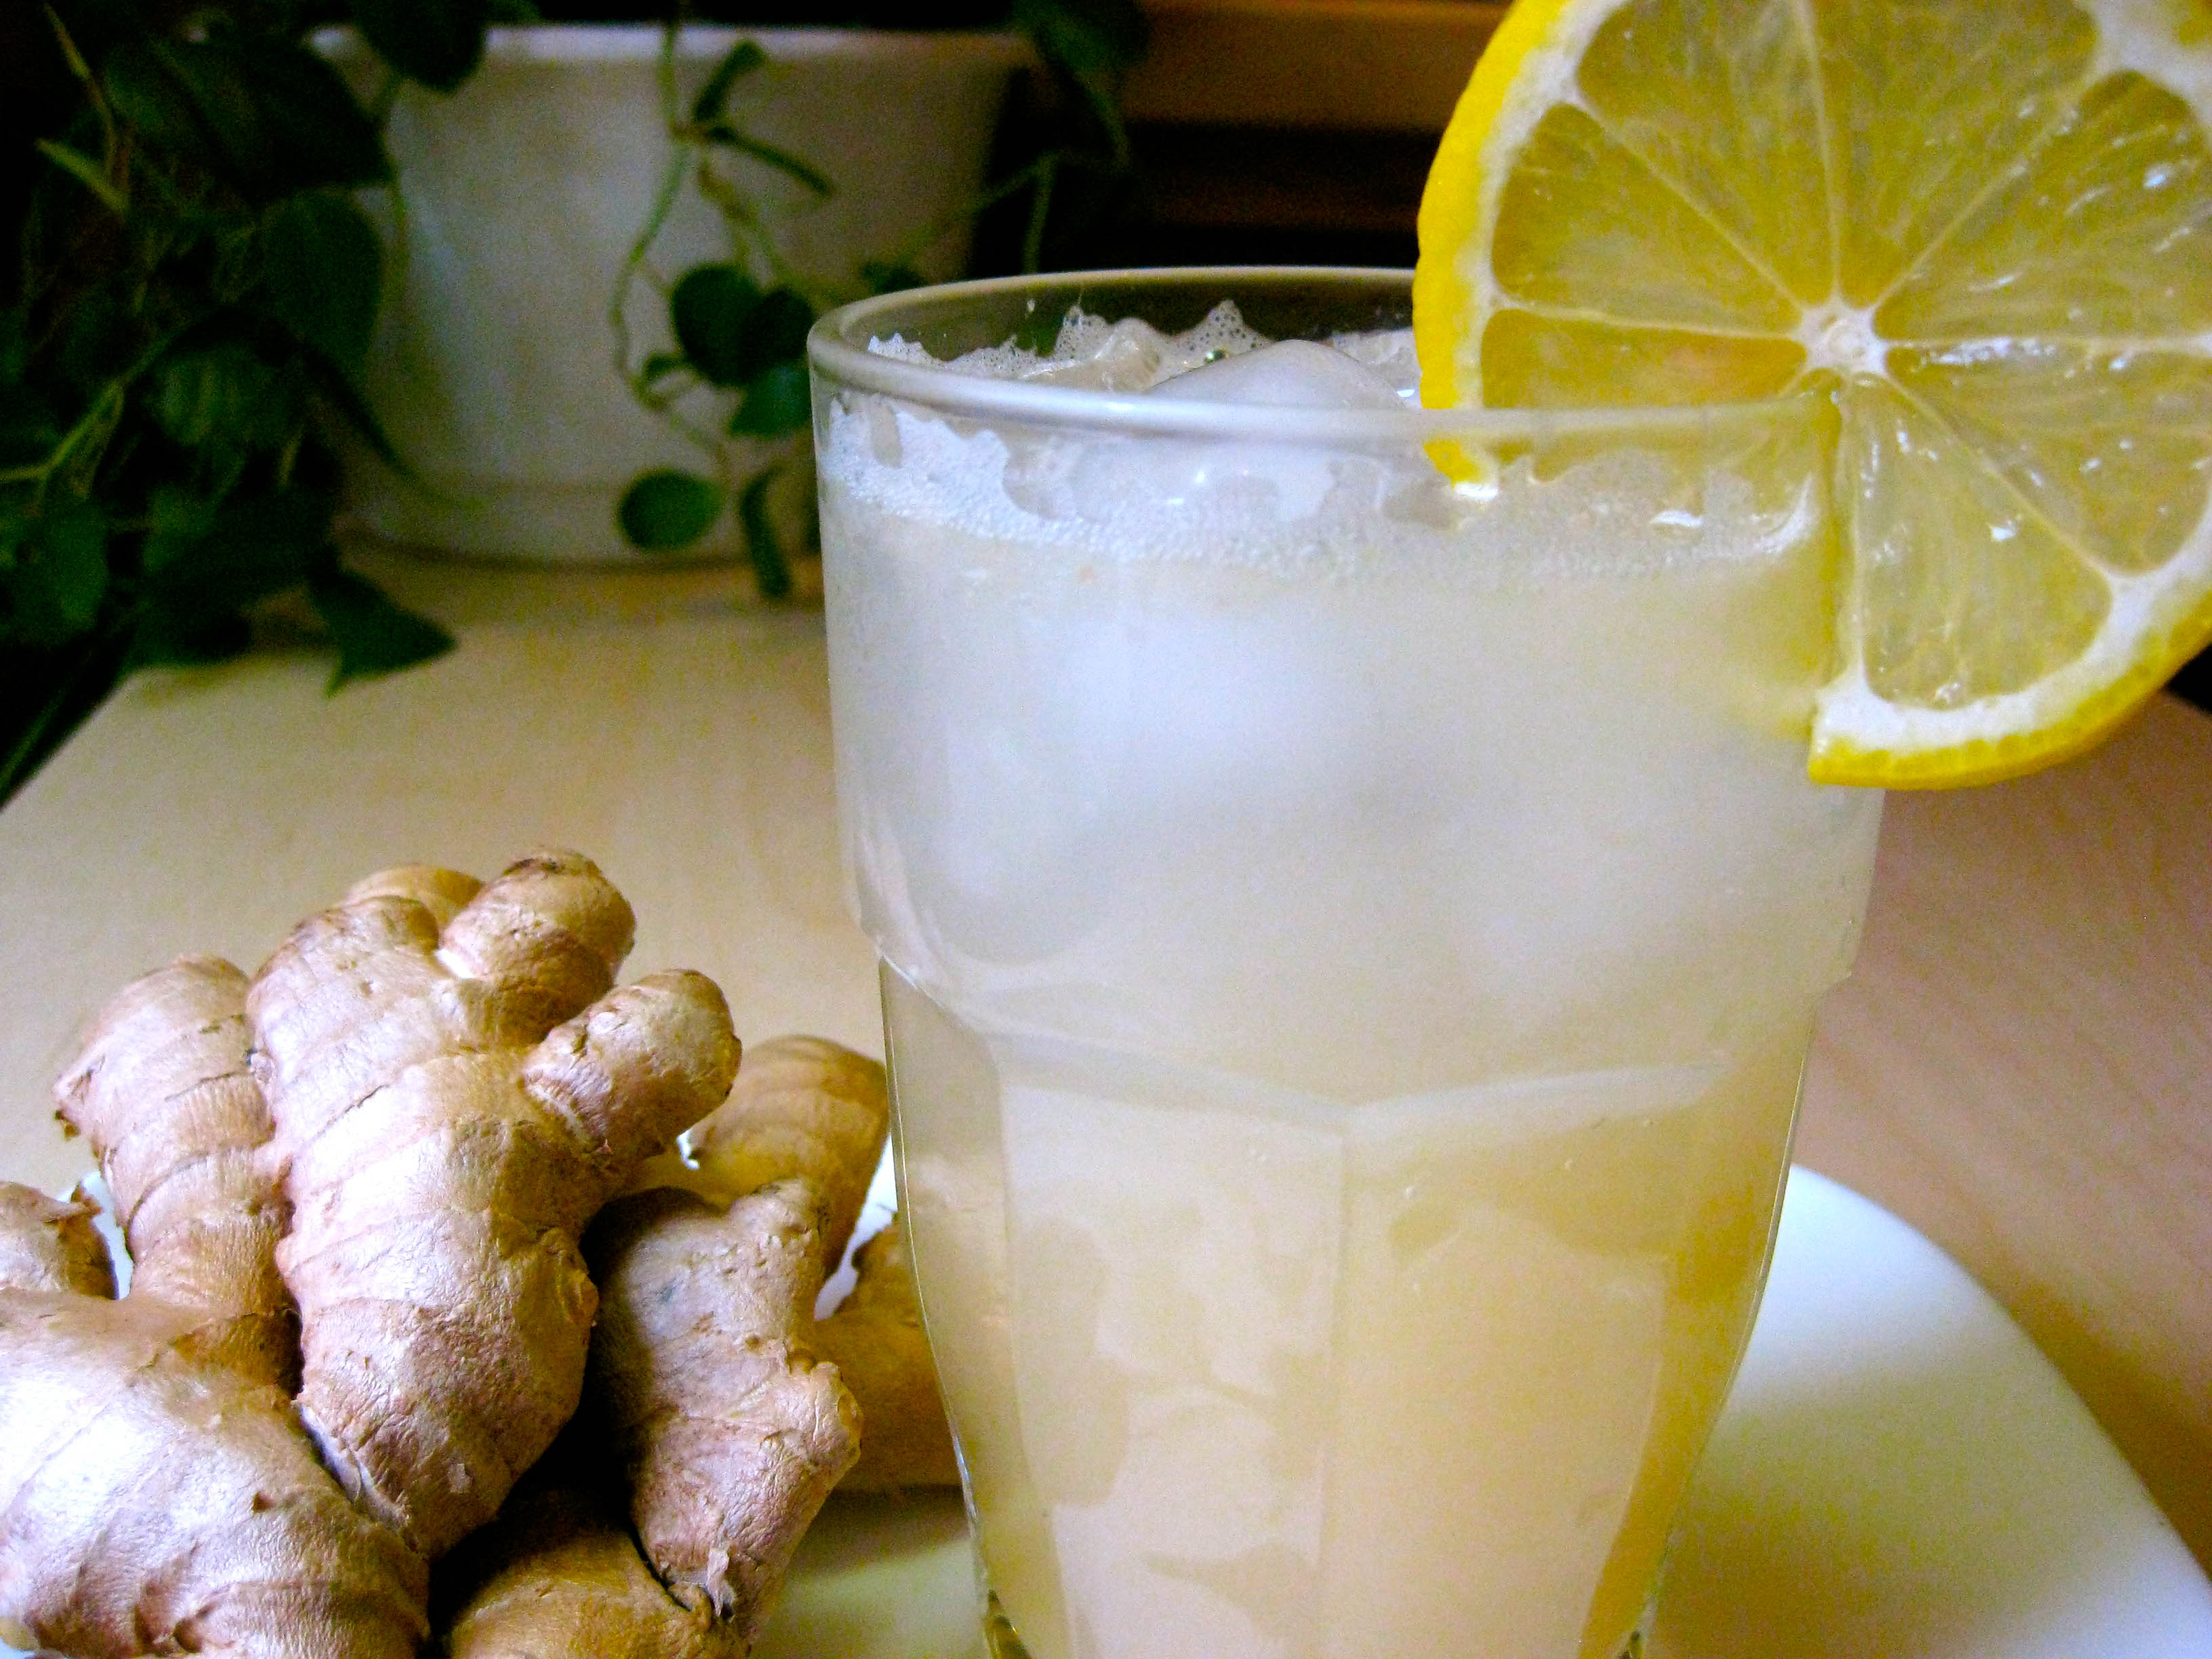 Adding-coconut-oil-to-ginger-juice-helps-kill-the-contagious-Norovirus-stomach-bug